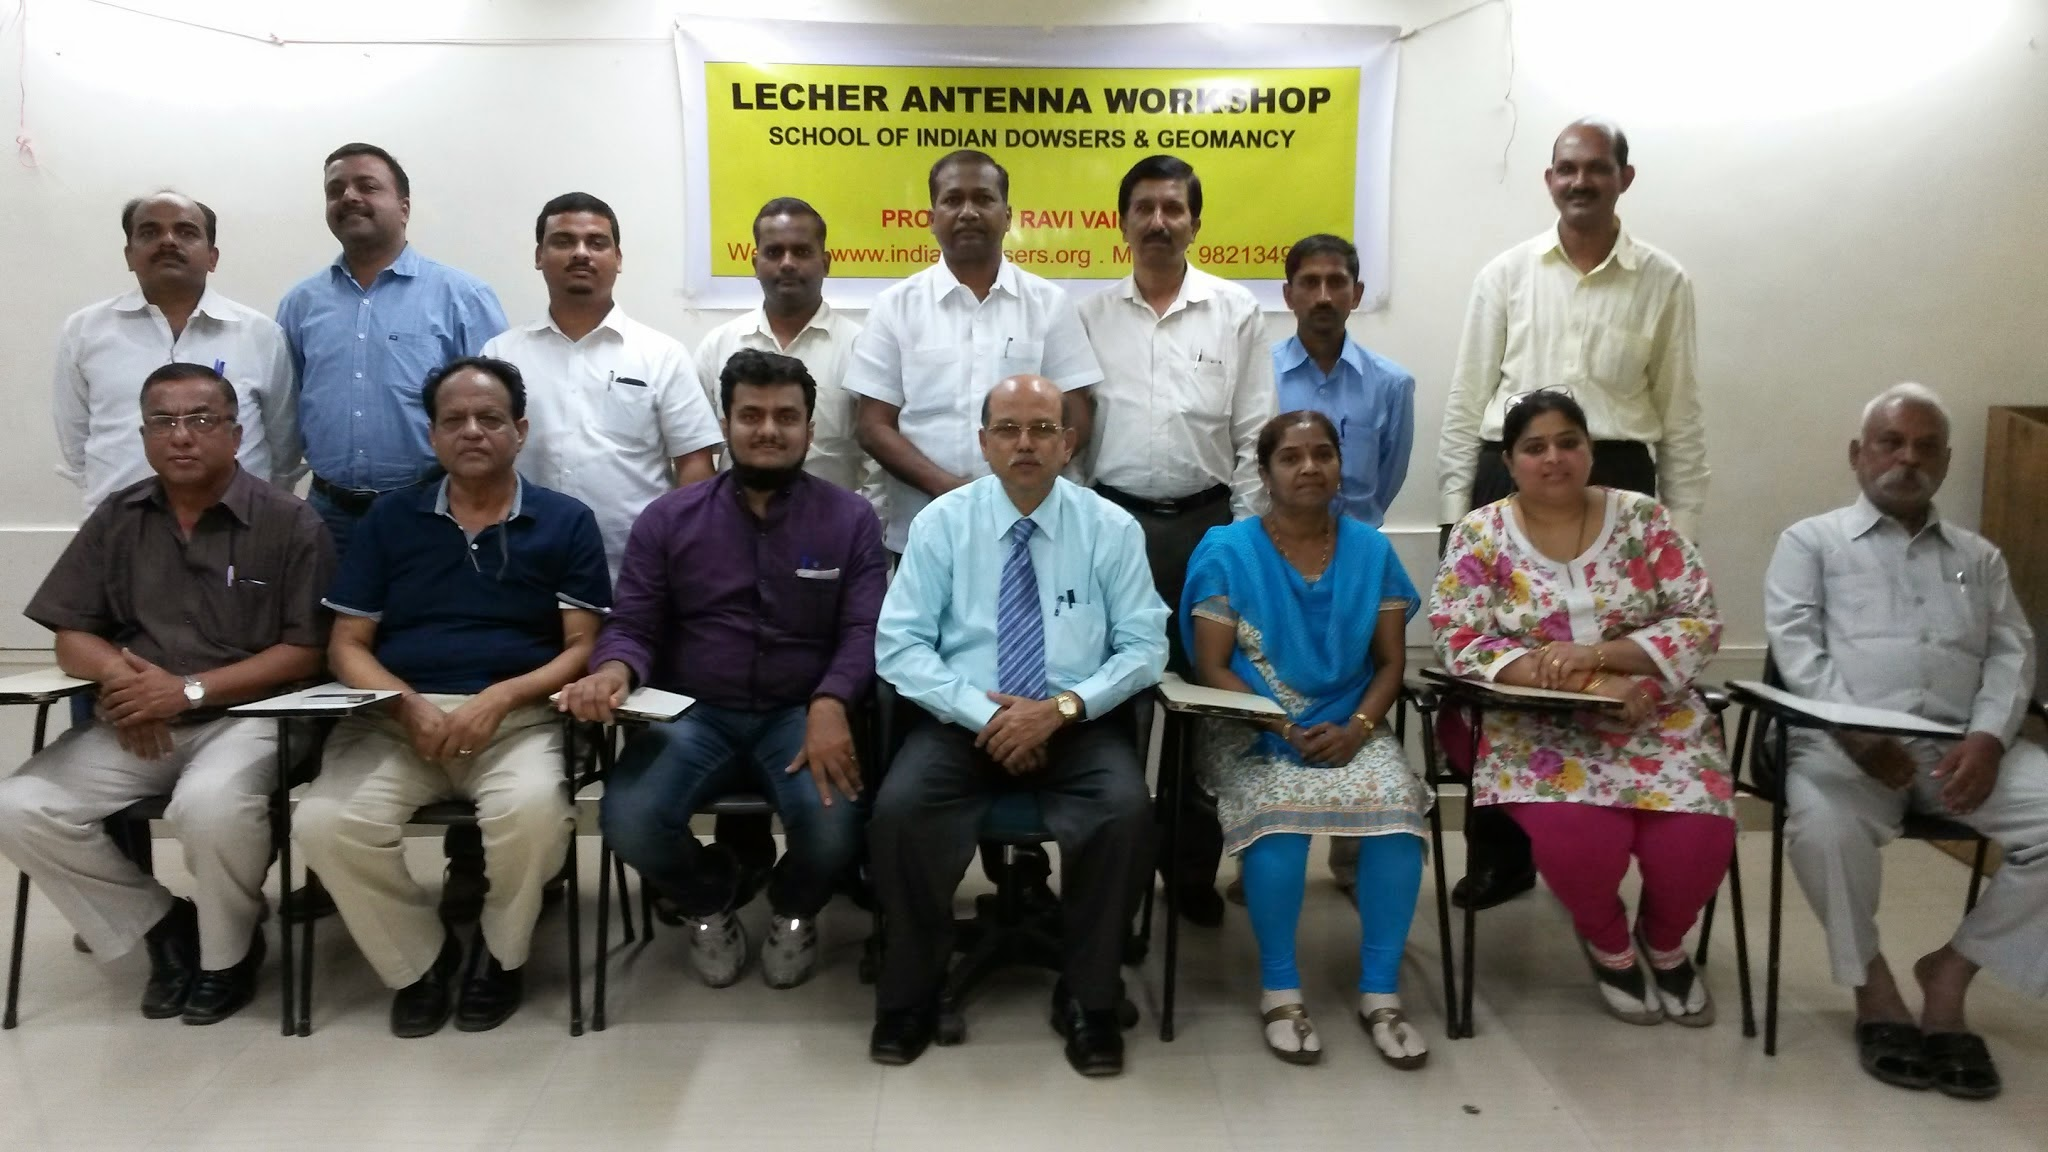 Lecher group 5 13 & 14th Apr 2014 .jpg